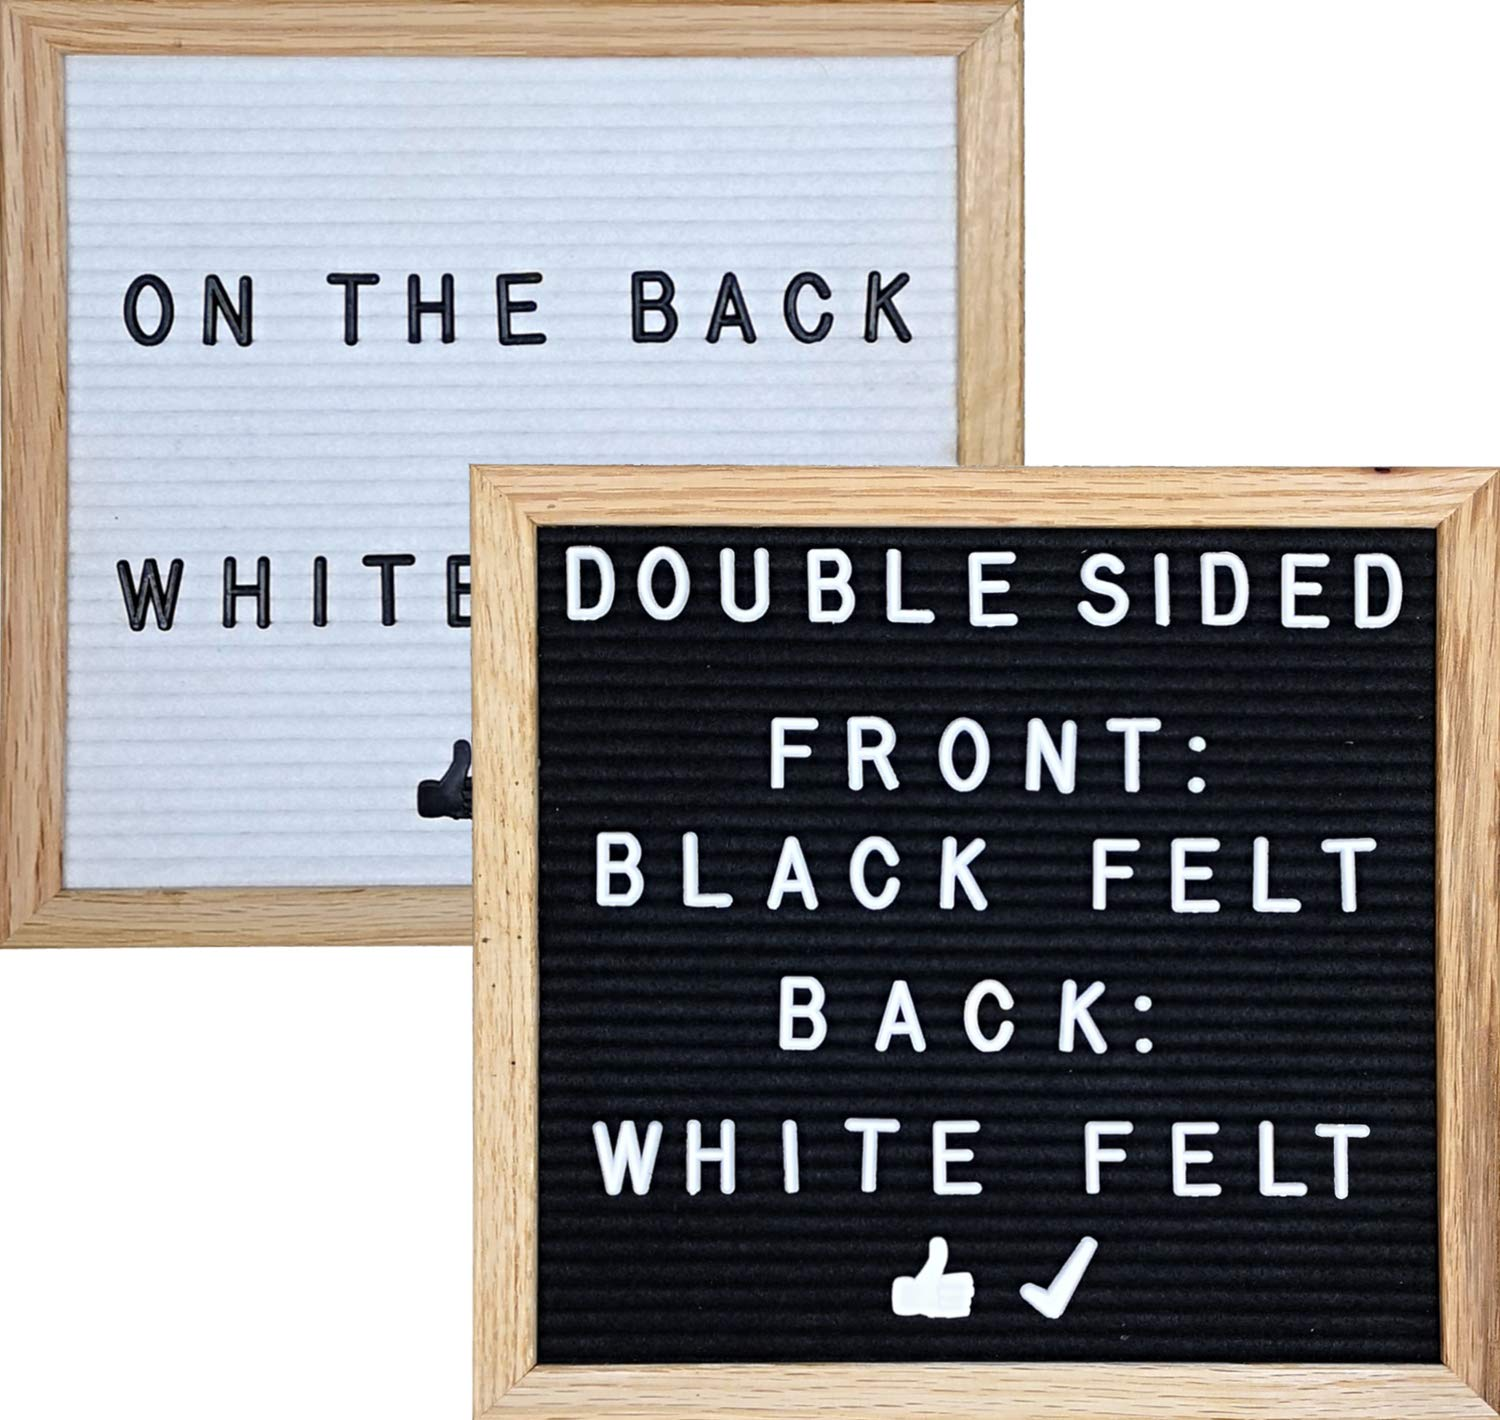 Double-Sided Black & White Felt Letter Board 10X10 with 692 White and Black Letters, Numbers and Emojis, 36 Slot Organizer Set,Oak Easel, Cutters, and 2 Letter Pouches